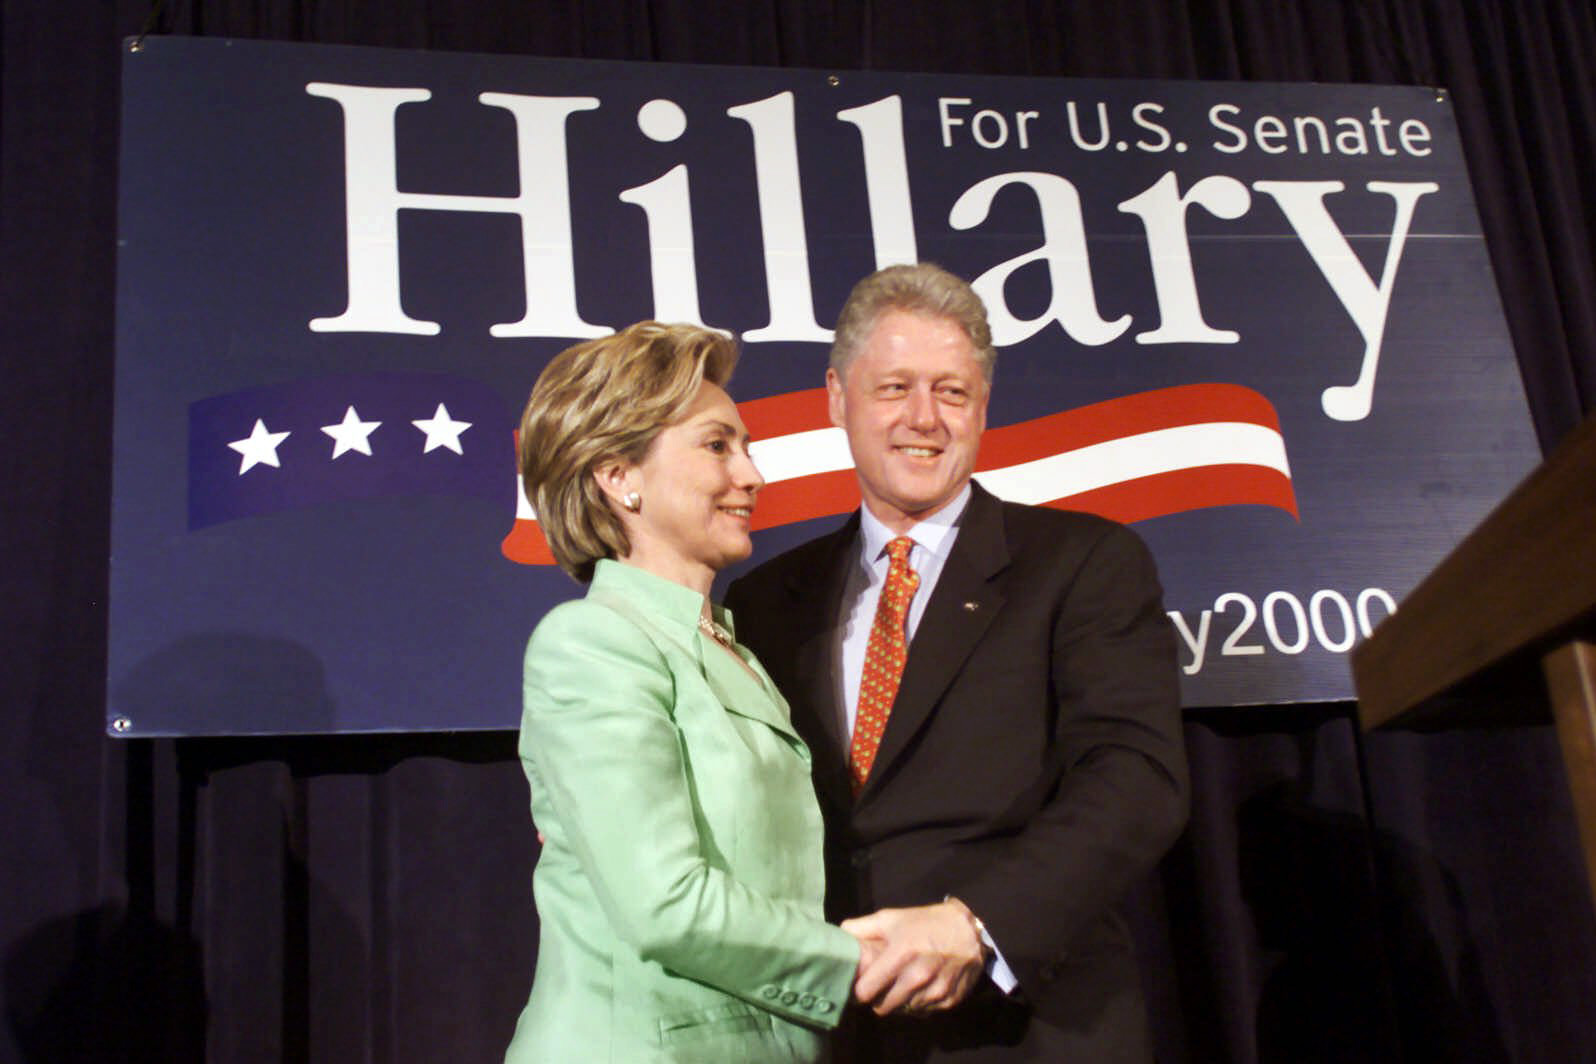 President Bill Clinton and  First Lady Hillary Rodham Clinton embrace during the New York State Senate luncheon on July 29, 2000 in New York City.